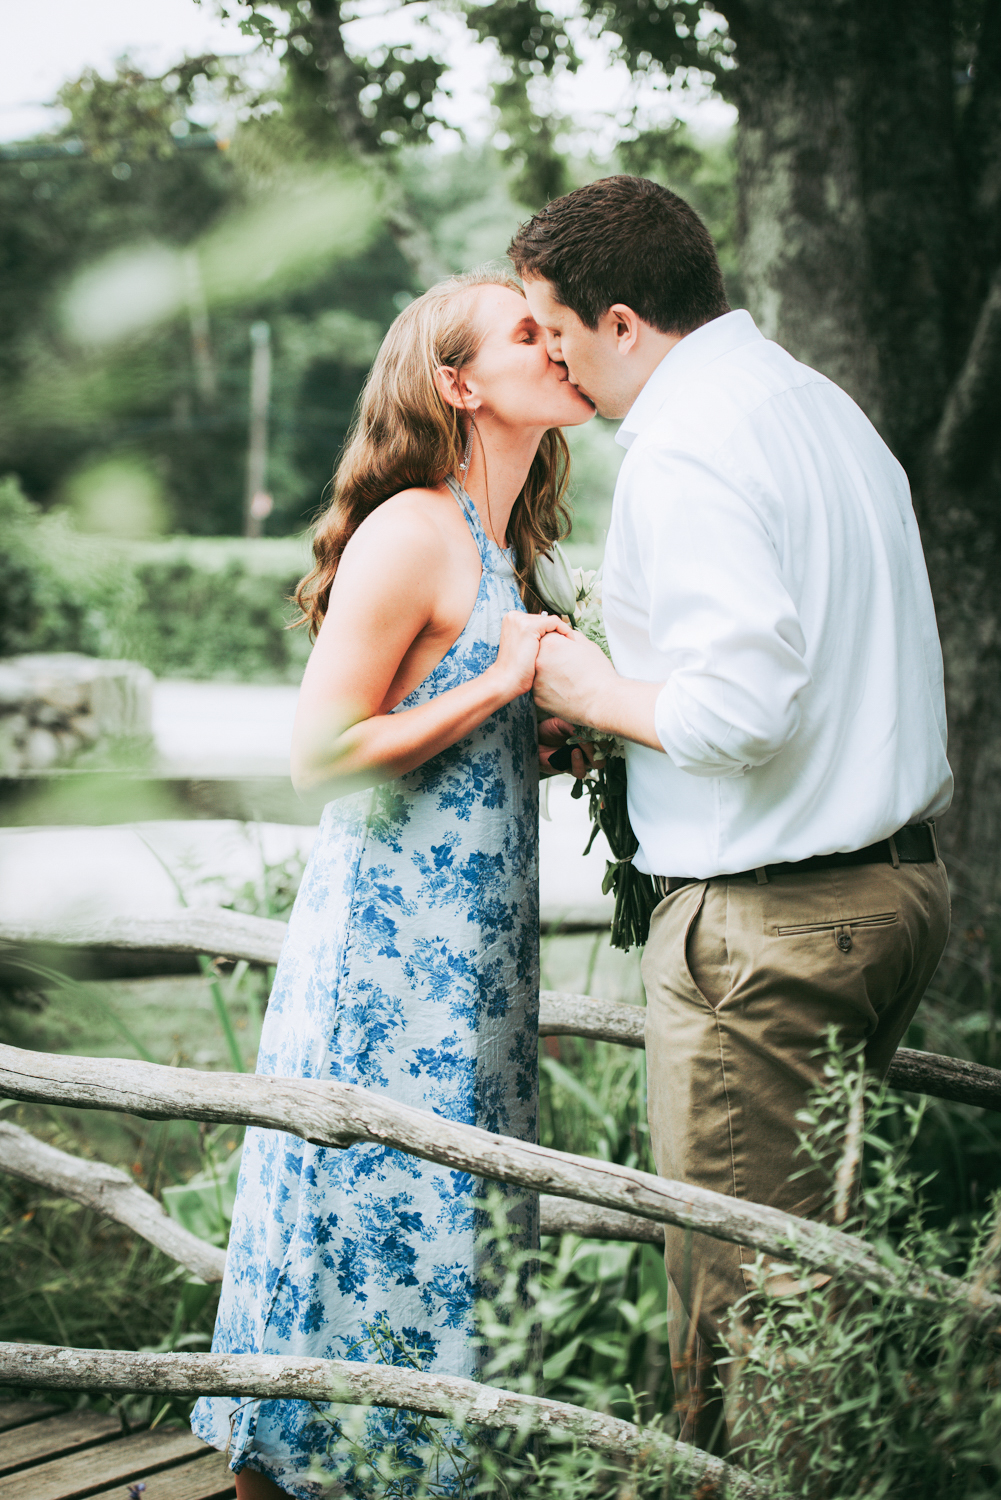 hilary_brian_engagement_kiss_west_tisbury-3617.jpg